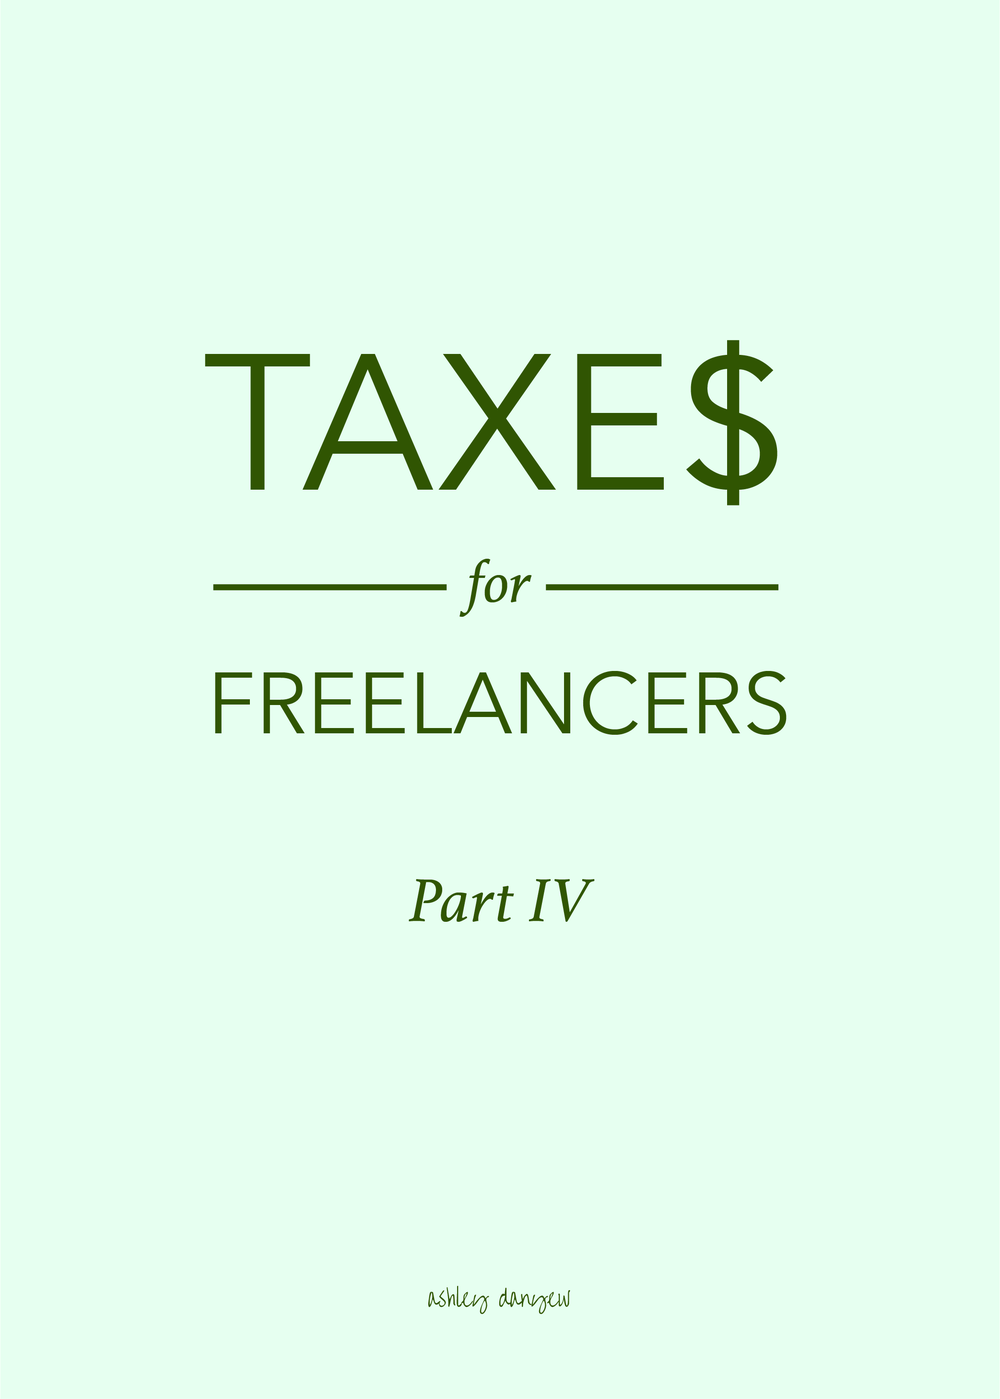 Taxes for Freelancers_IV.png